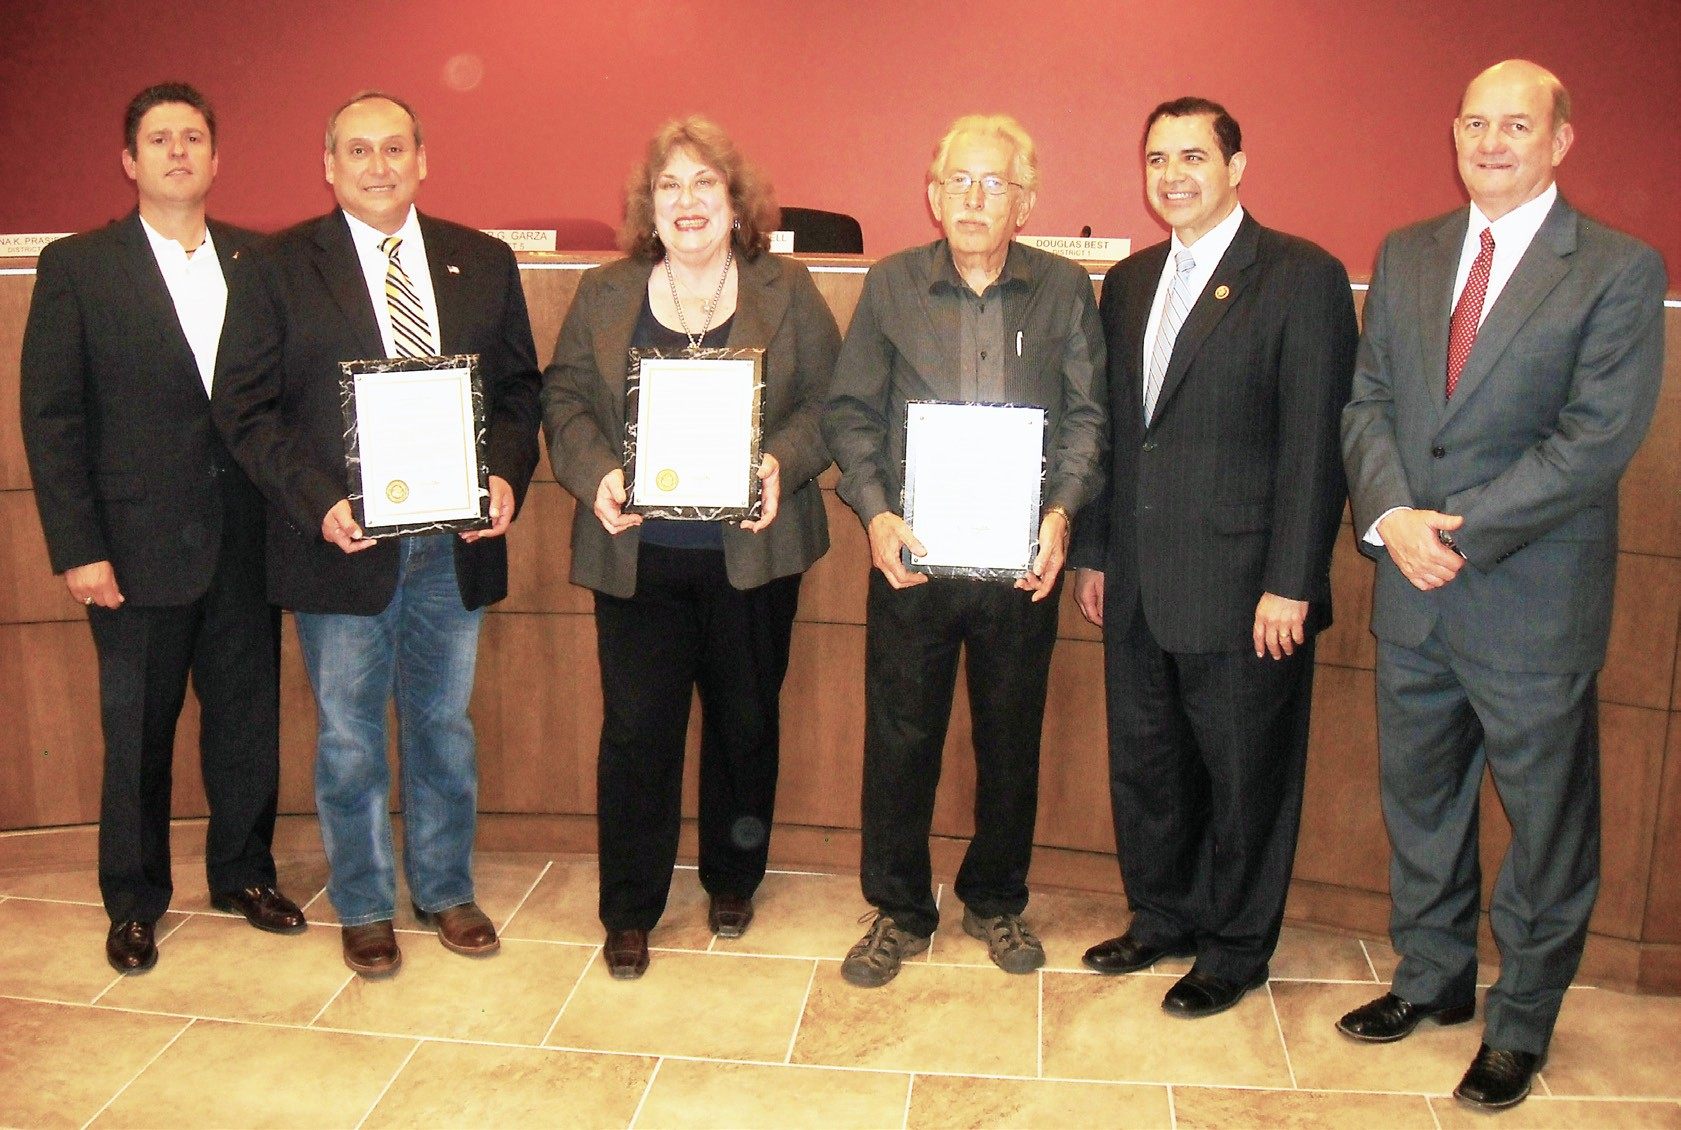 U. S. Congressman Henry Cuellar (second from right) gave specia lCongressional Recognition to three outgoing Pleasanton City Councilmembers - Roger G. Garza (18 years), Jeanne Israel (6 years) and J.R. Gallegos (23 years) on Monday, May 11. Dr. Cuellar presented three plaques and read each personalized message for each member. Dr. Cuellar stressed to those in attendance that this will forever be in the Congressional Record. Cuellar read the recognitions on the U. S. House of Representatives floor on March 25, 2015.